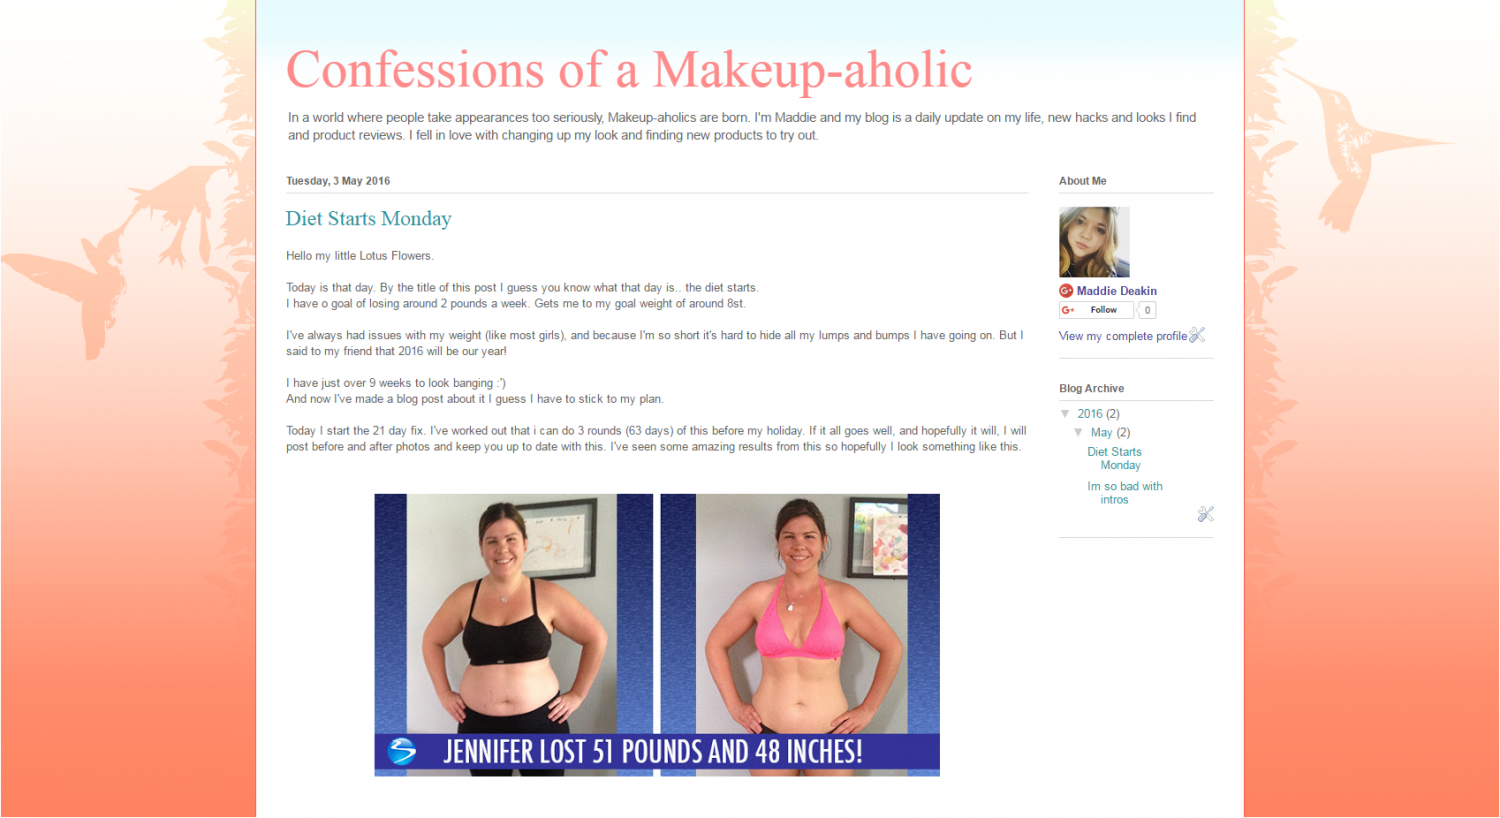 Confessions of a Makeup-aholic Infographic